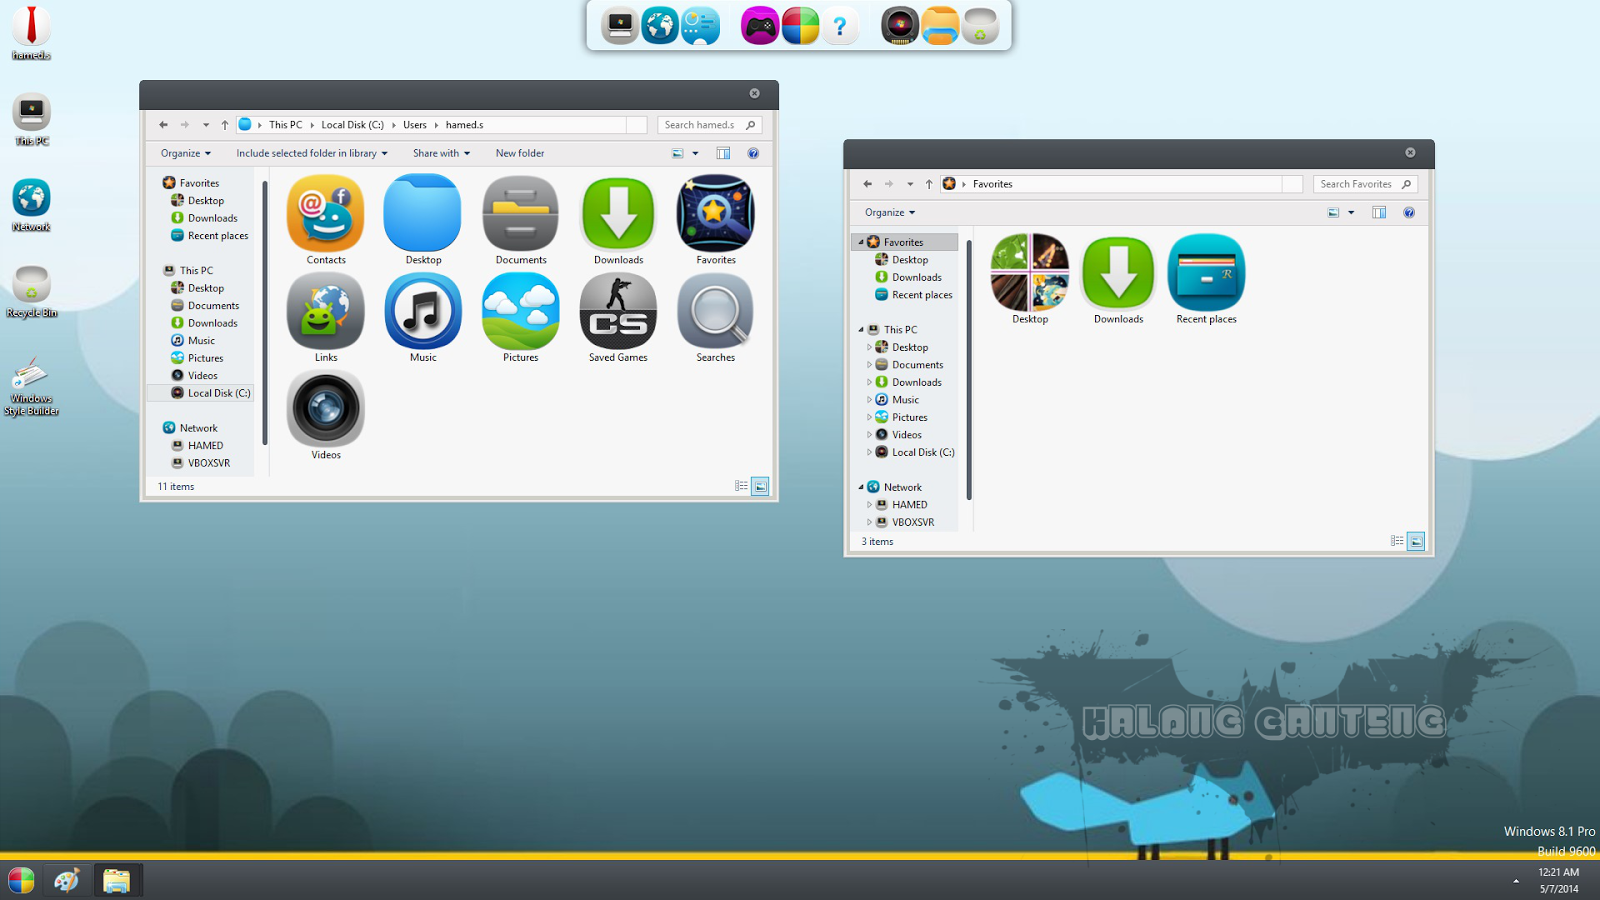 MeeGo Skin Pack for win 8 Screenshot